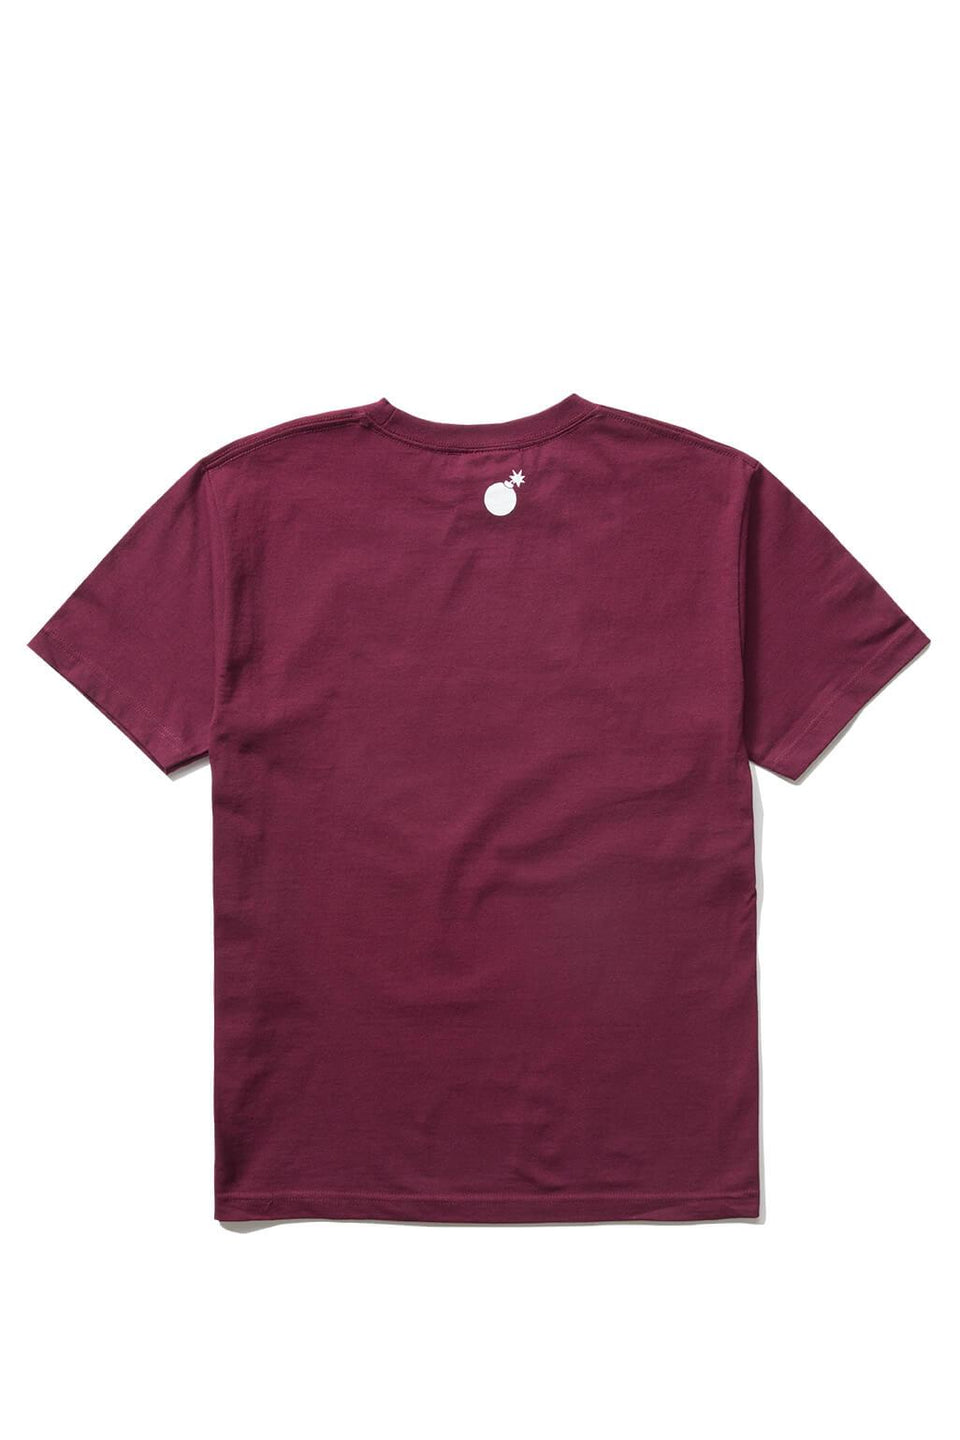 Forever Slant T-Shirt Burgundy Back